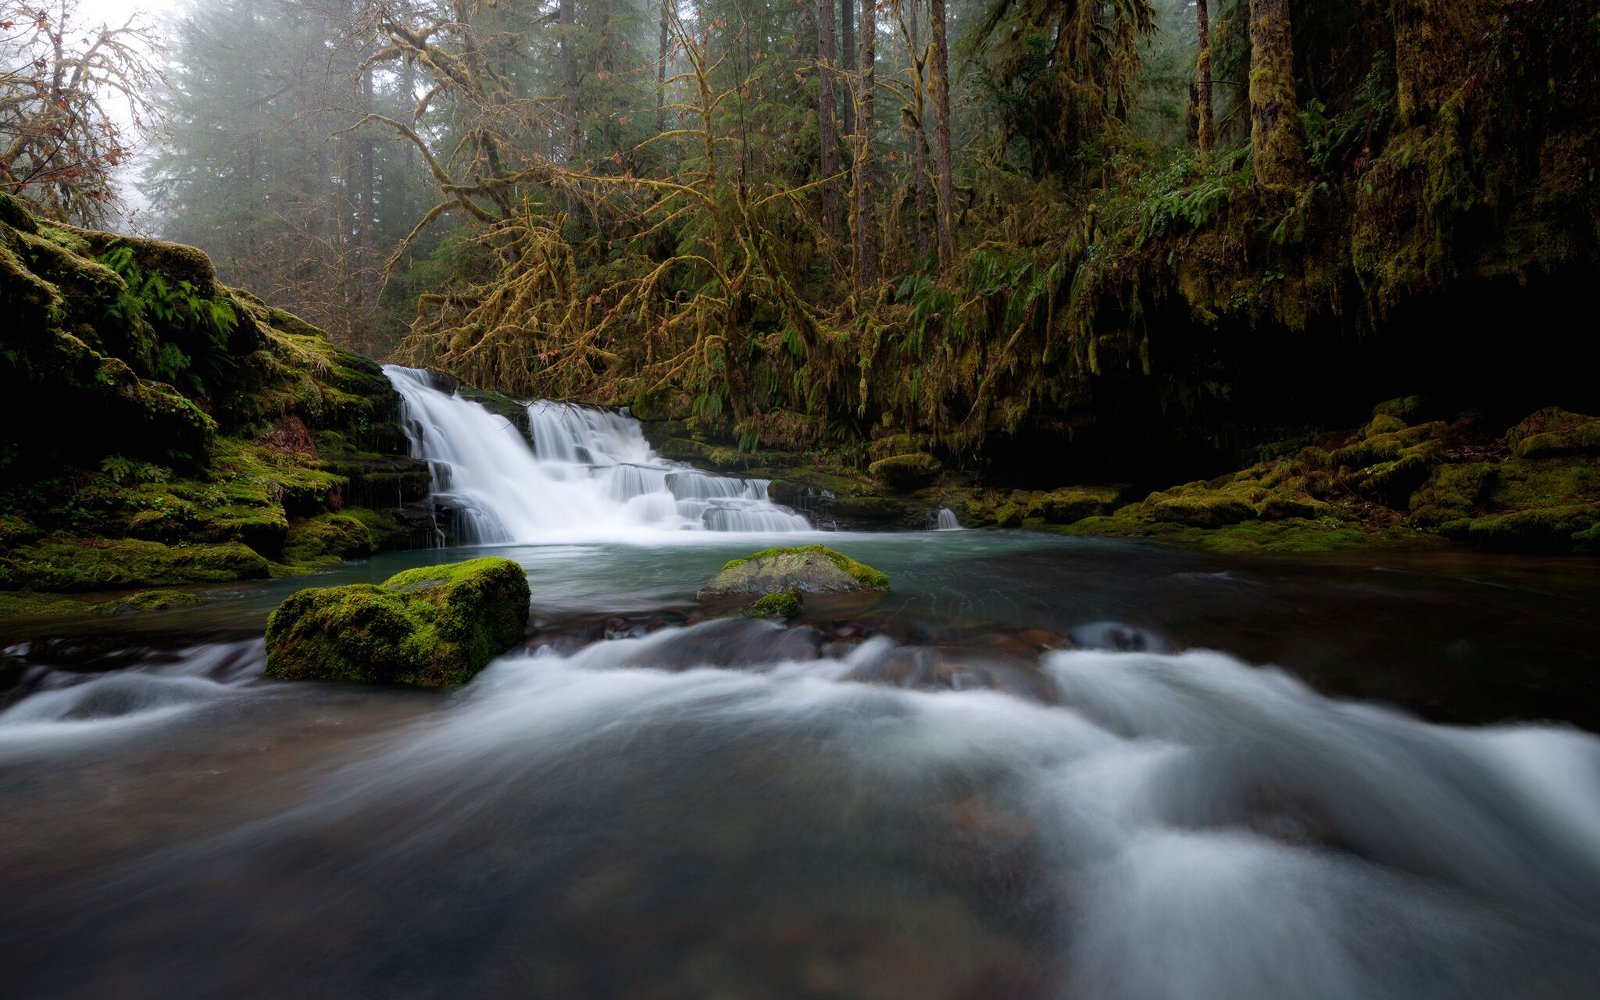 Press Release: Oregon Supreme Court Affirms Sale of Elliott State Forest Tract Is Illegal